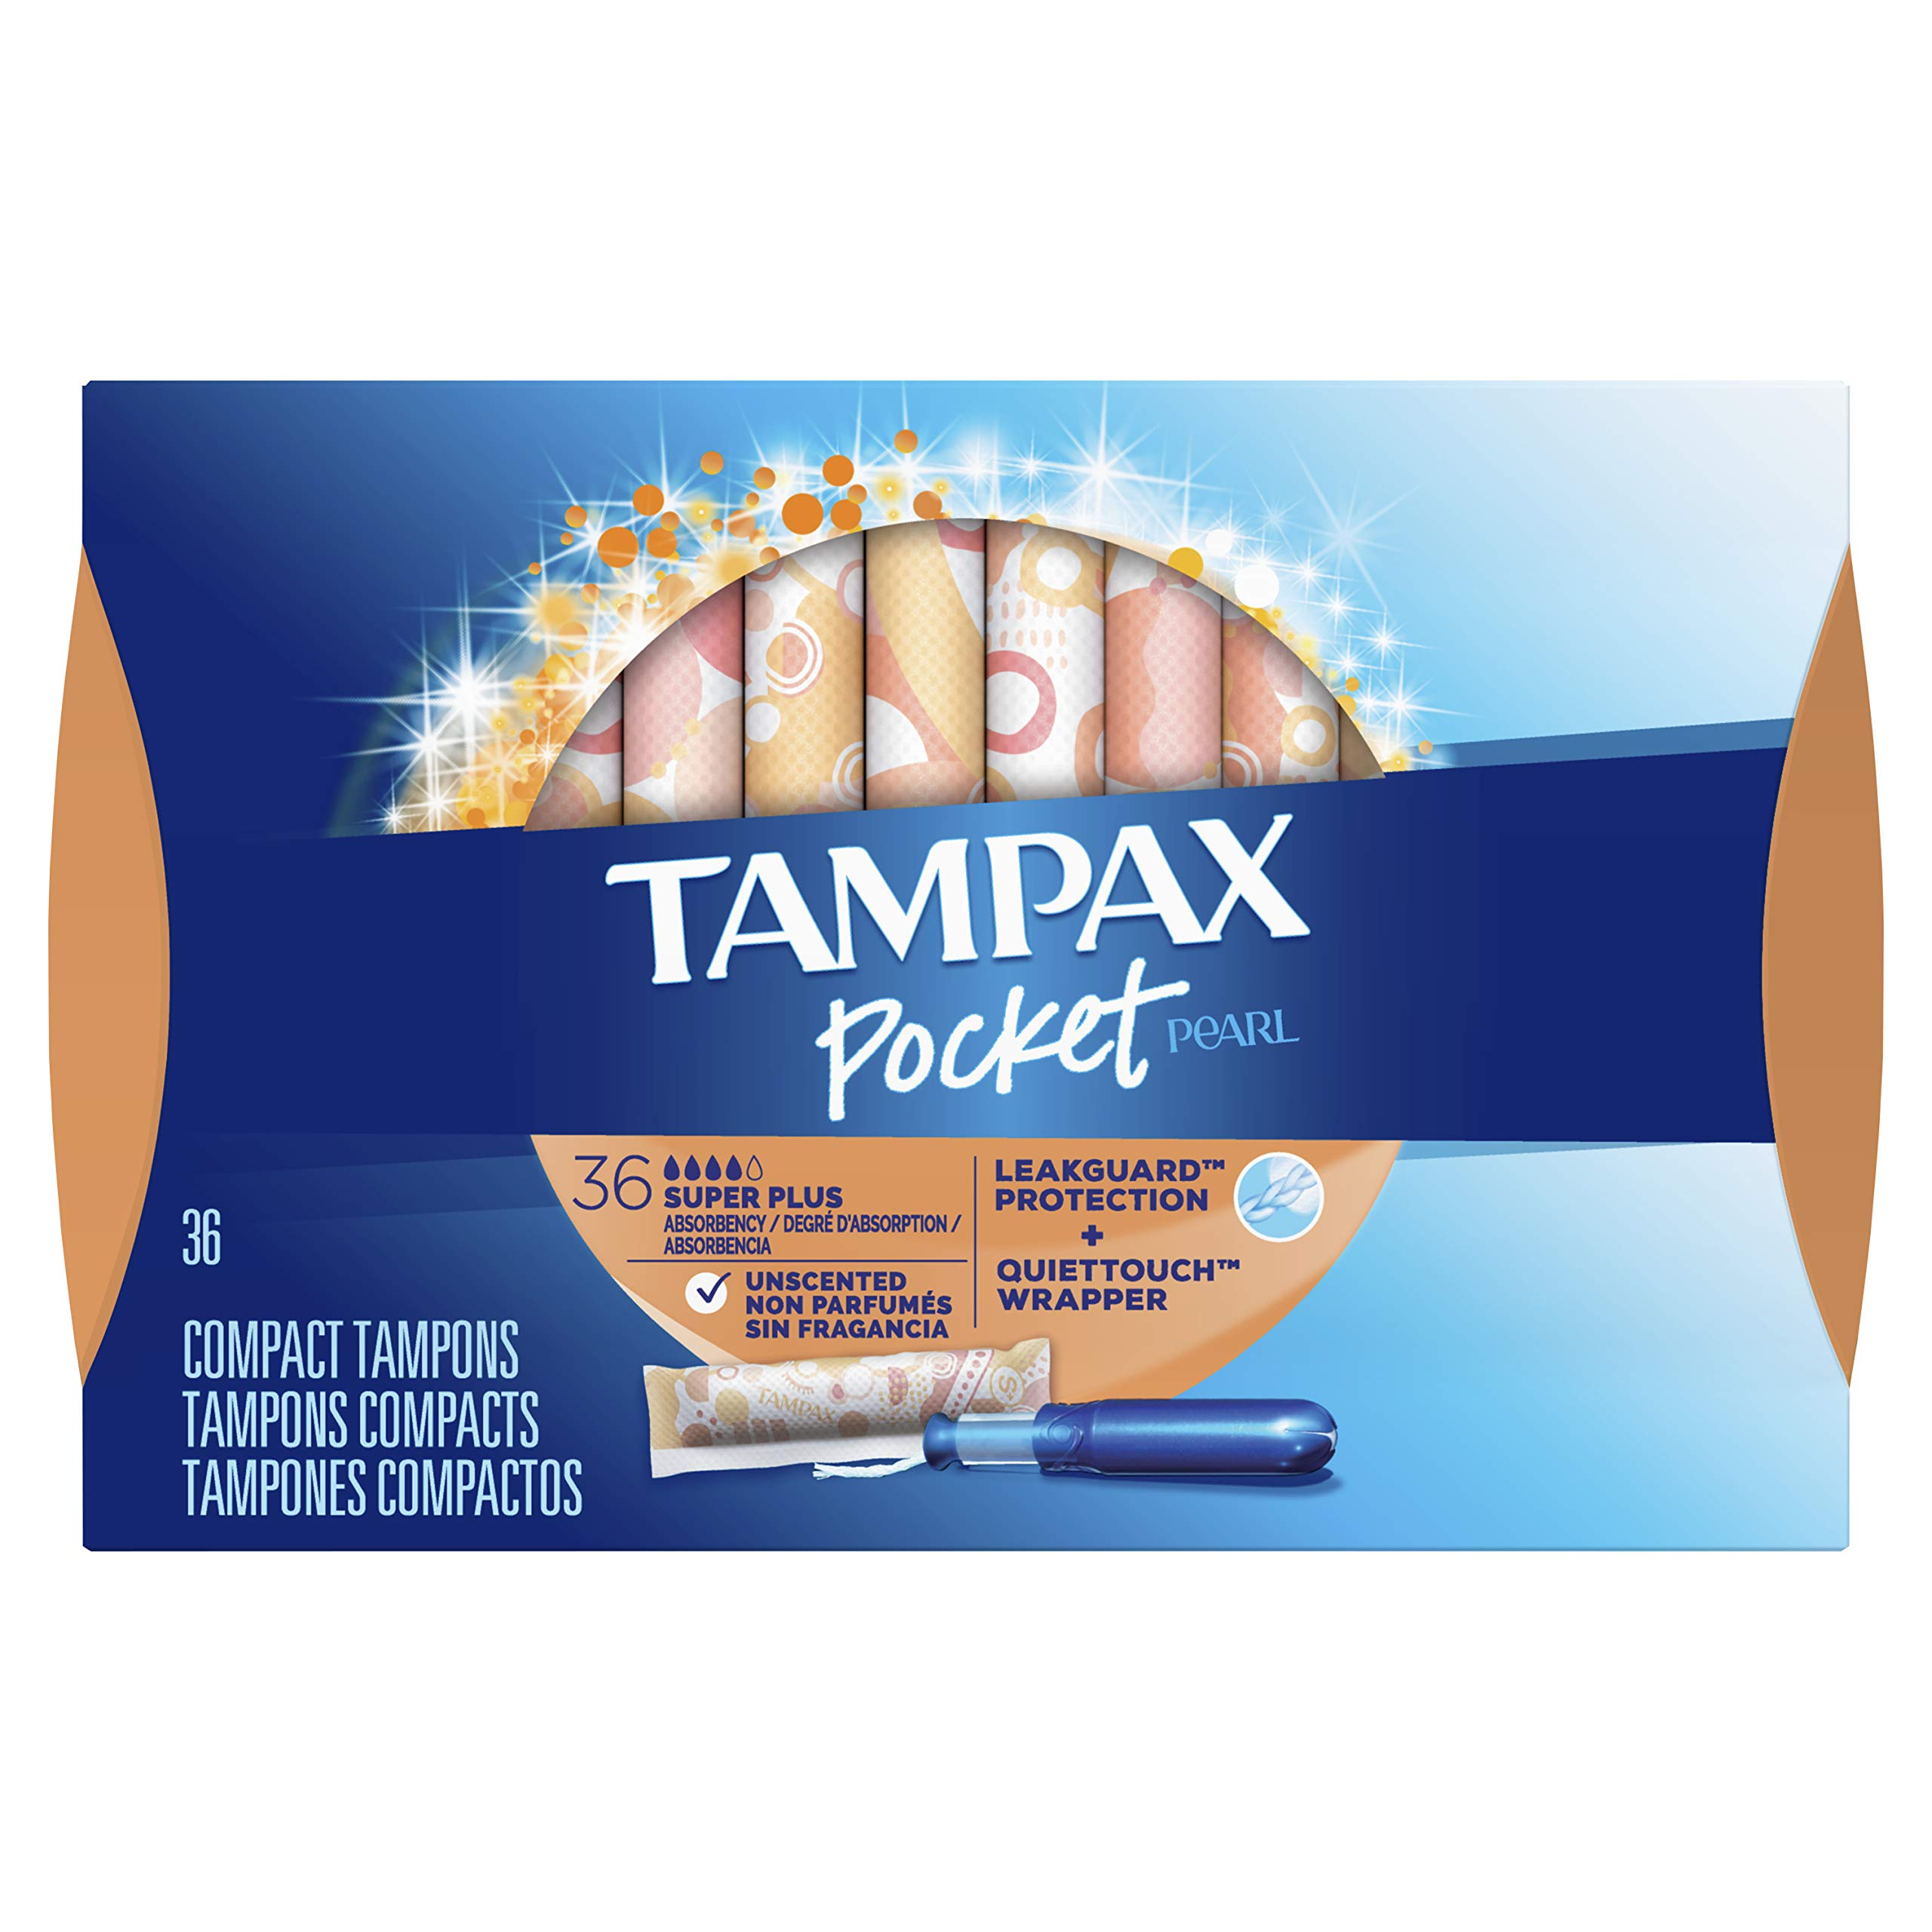 Tampax Pocket Pearl Tampons with Plastic Applicator, Super Plus Absorbency, Unscented, 36 Count - Pack of 3 (108 Count Total) (Packaging May Vary) by Tampax